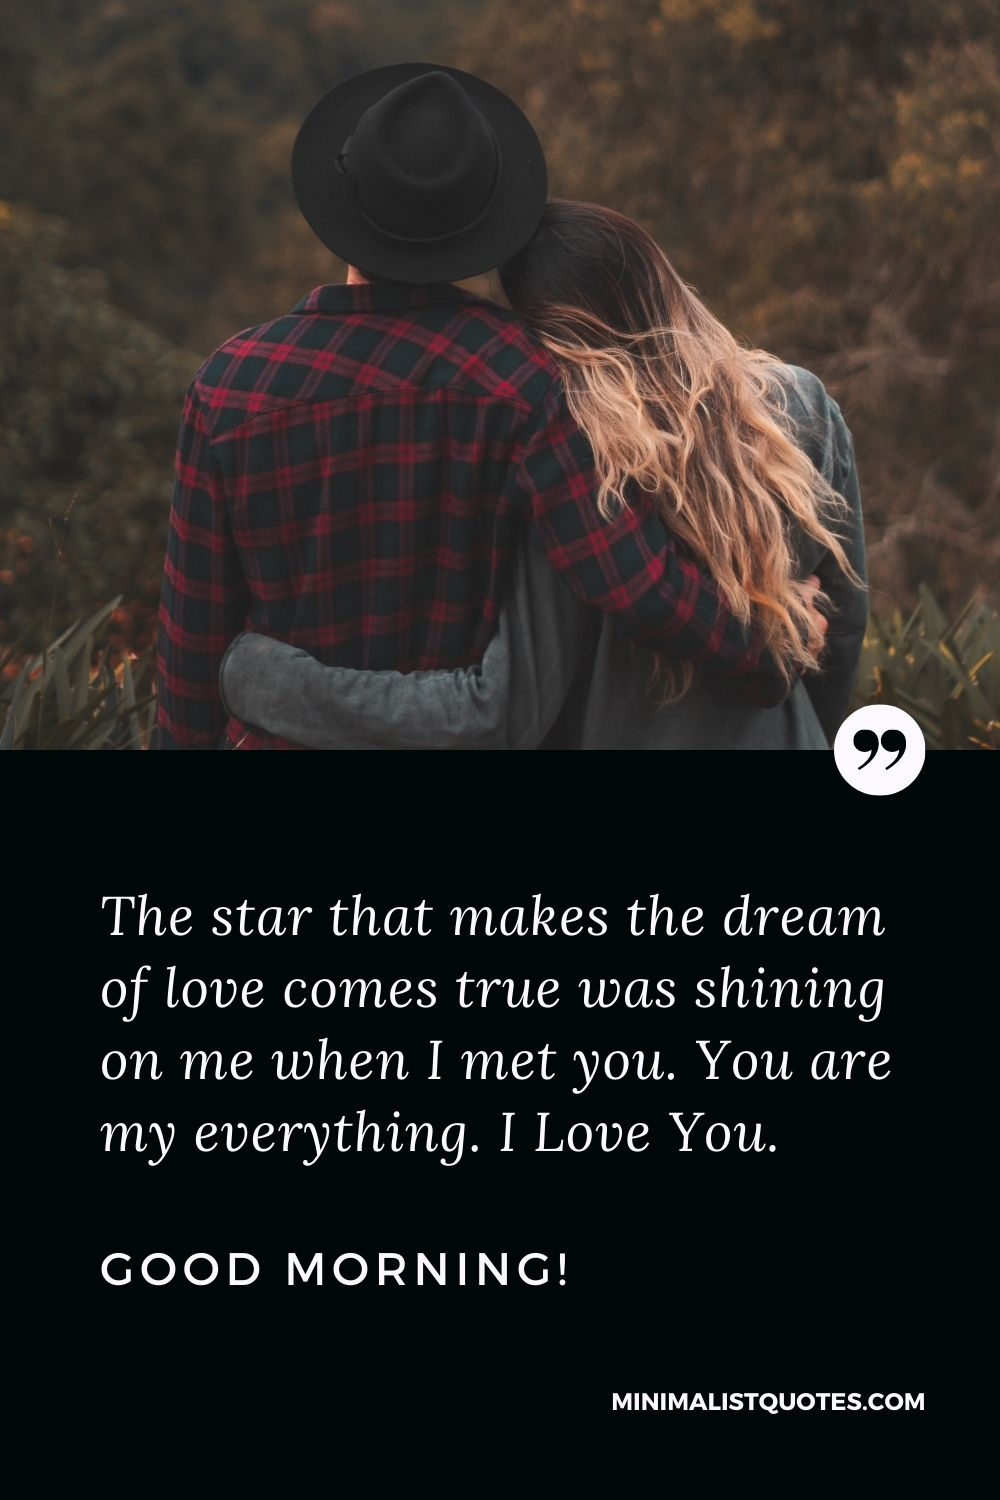 Good morning my love quotes: The star that makes the dream of love comes true was shining on me when I met you. You are my everything. I Love You. Good Morning!